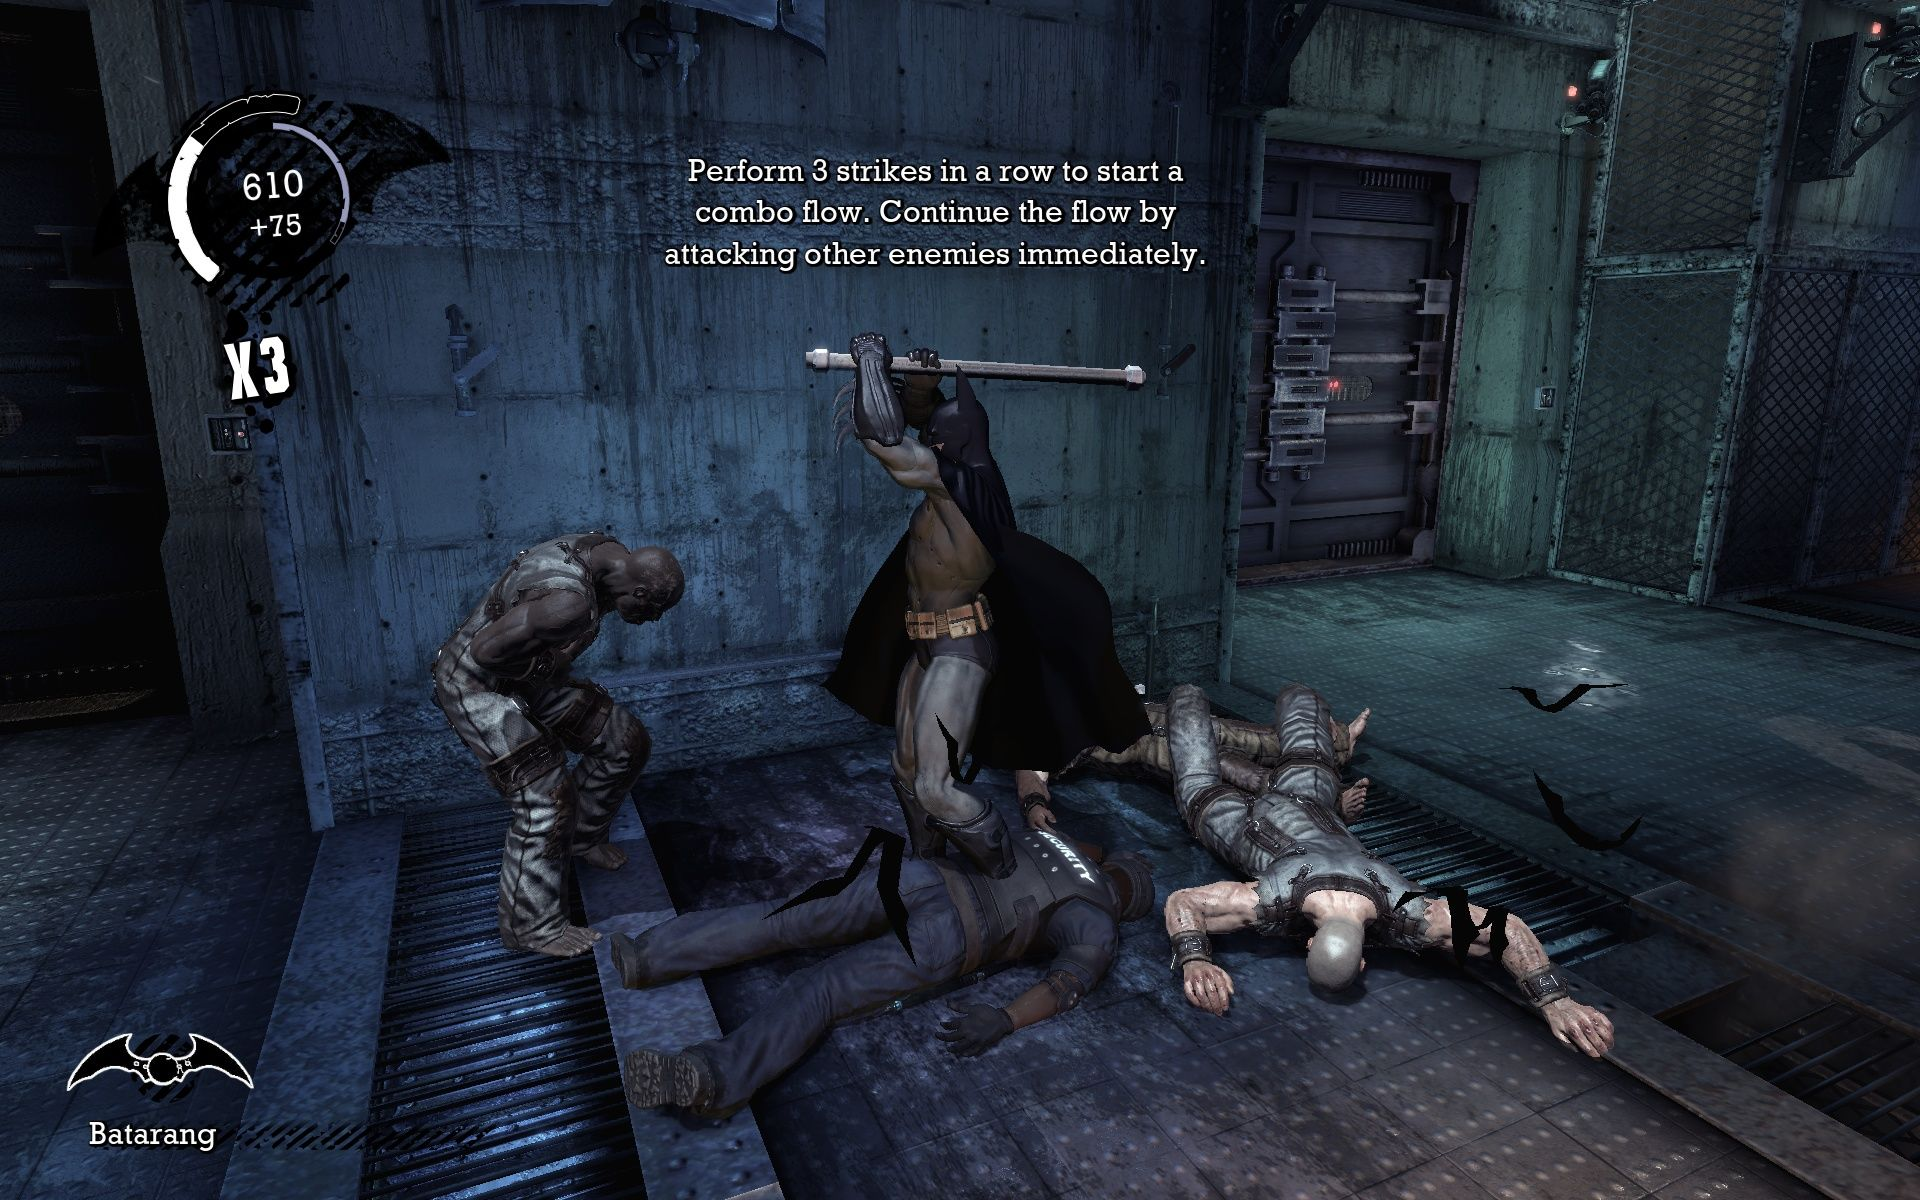 Batman: Arkham Asylum Windows Normally a punch in the face is enough but that guy just wouldn't stop hitting Batman with his pipe...